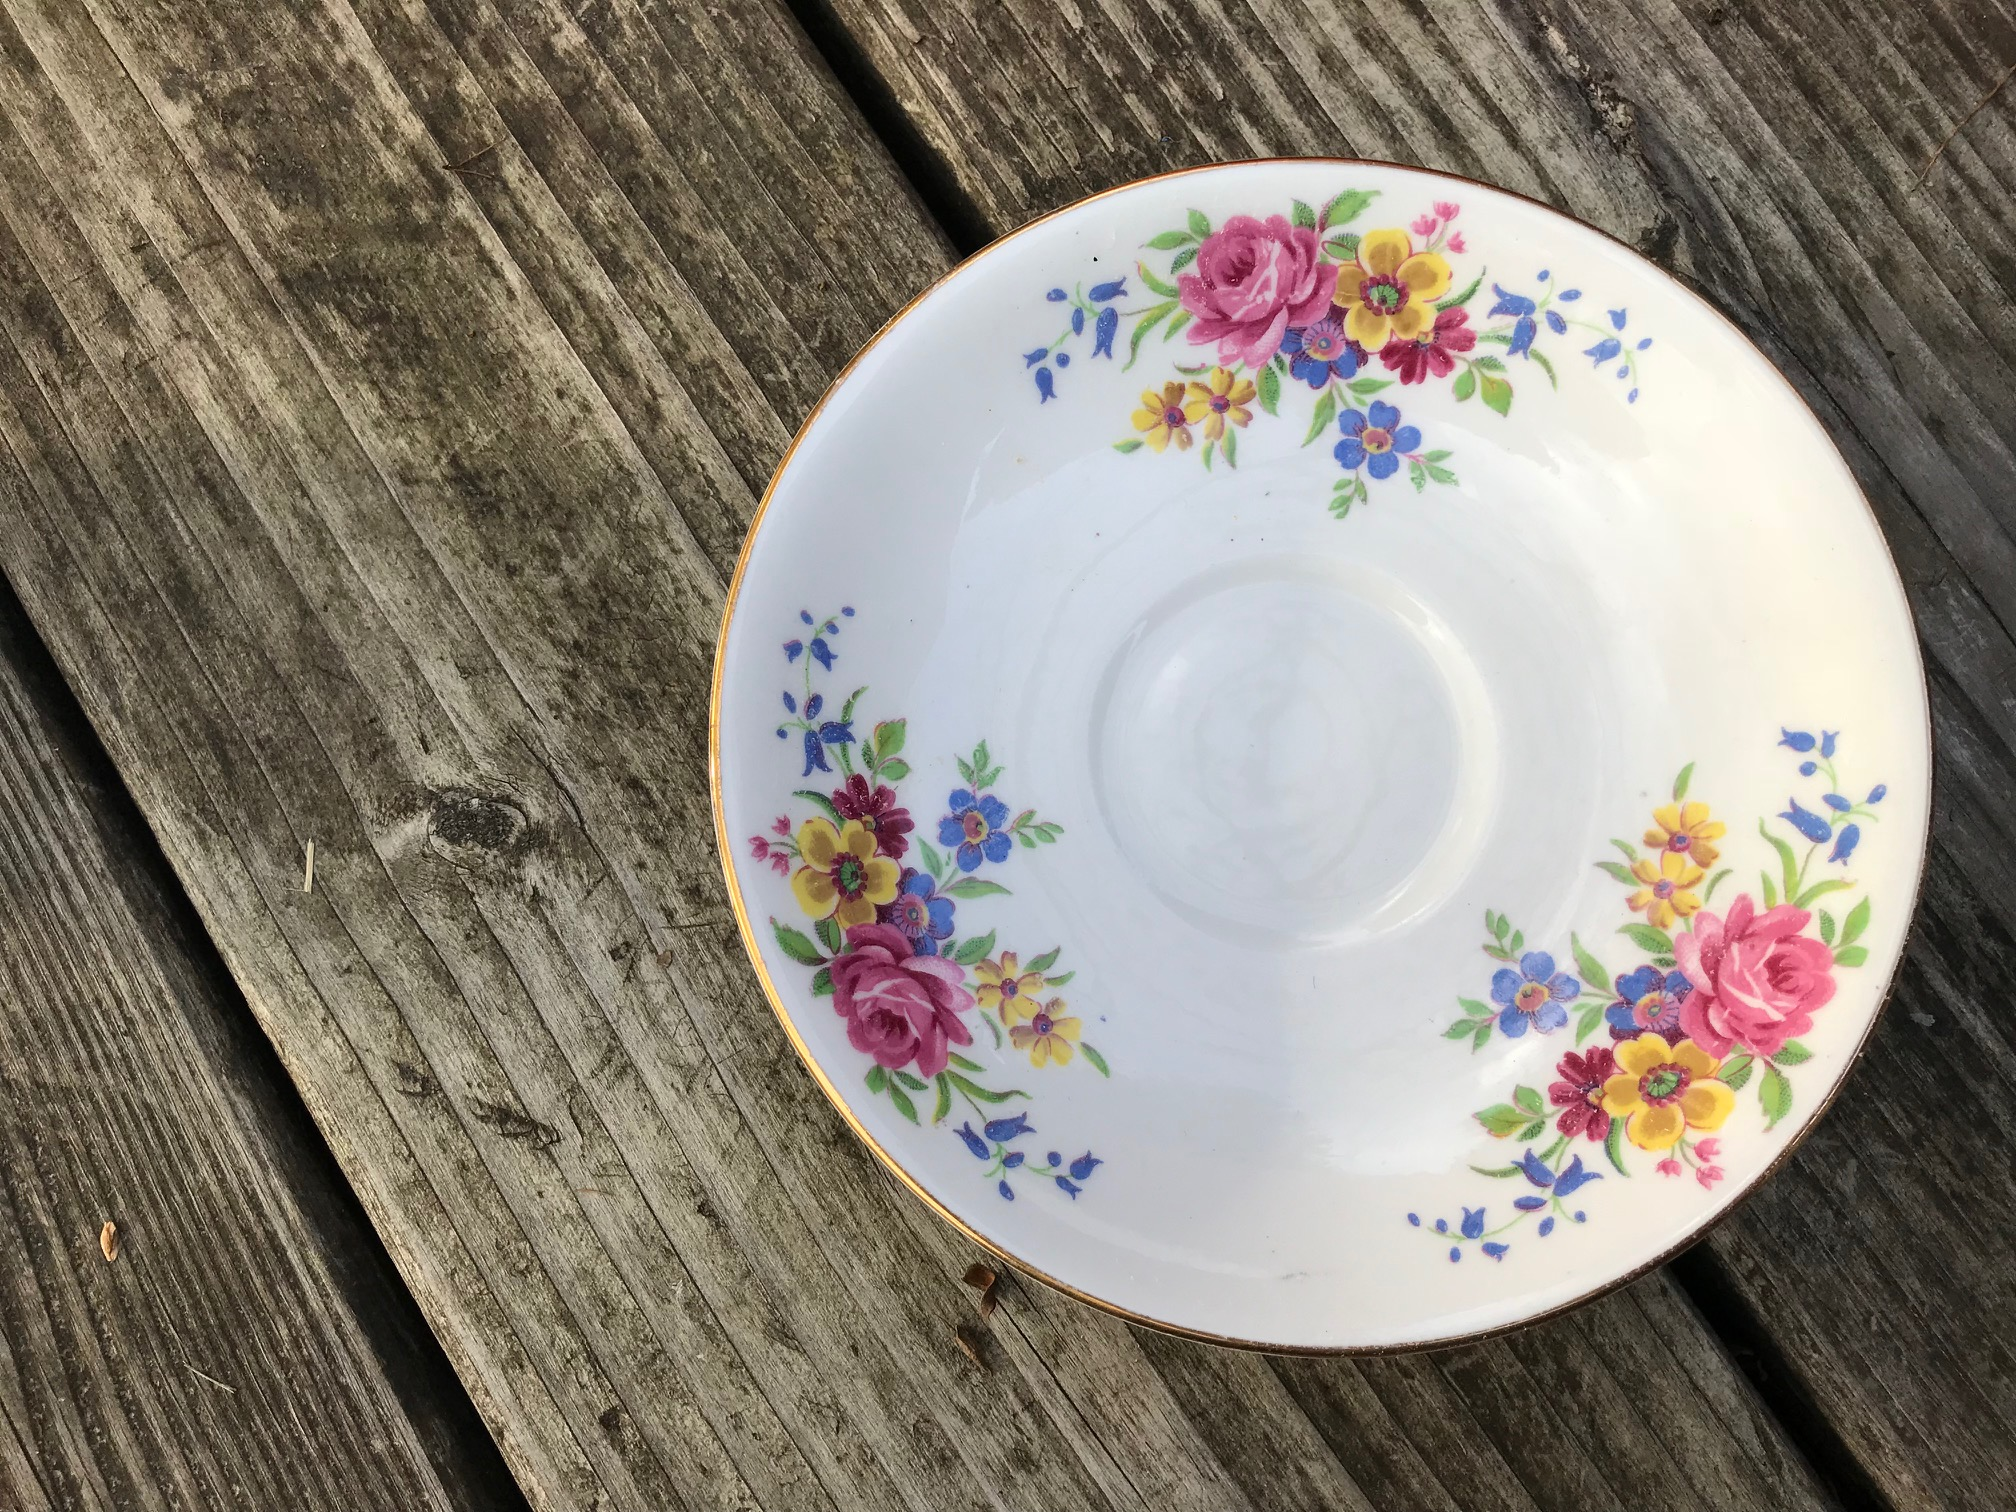 Vale Saucer Made in Longton England - Floral Pattern: 54,600 ppm Lead